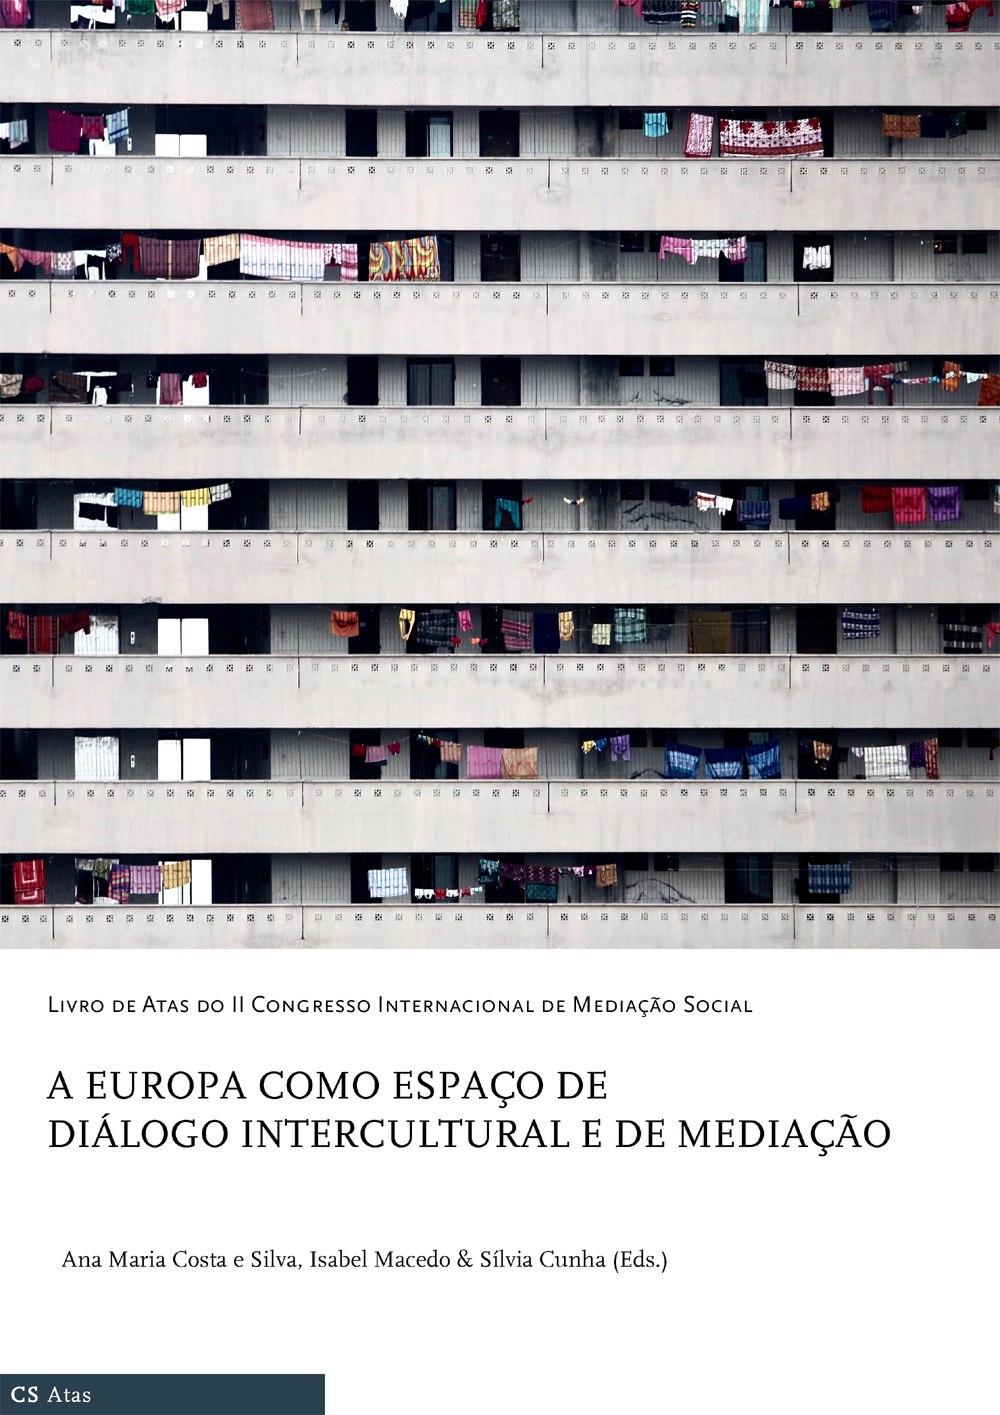 """Available online: """"Conference Proceedings ebook of the II International Congress of Social Mediation"""""""